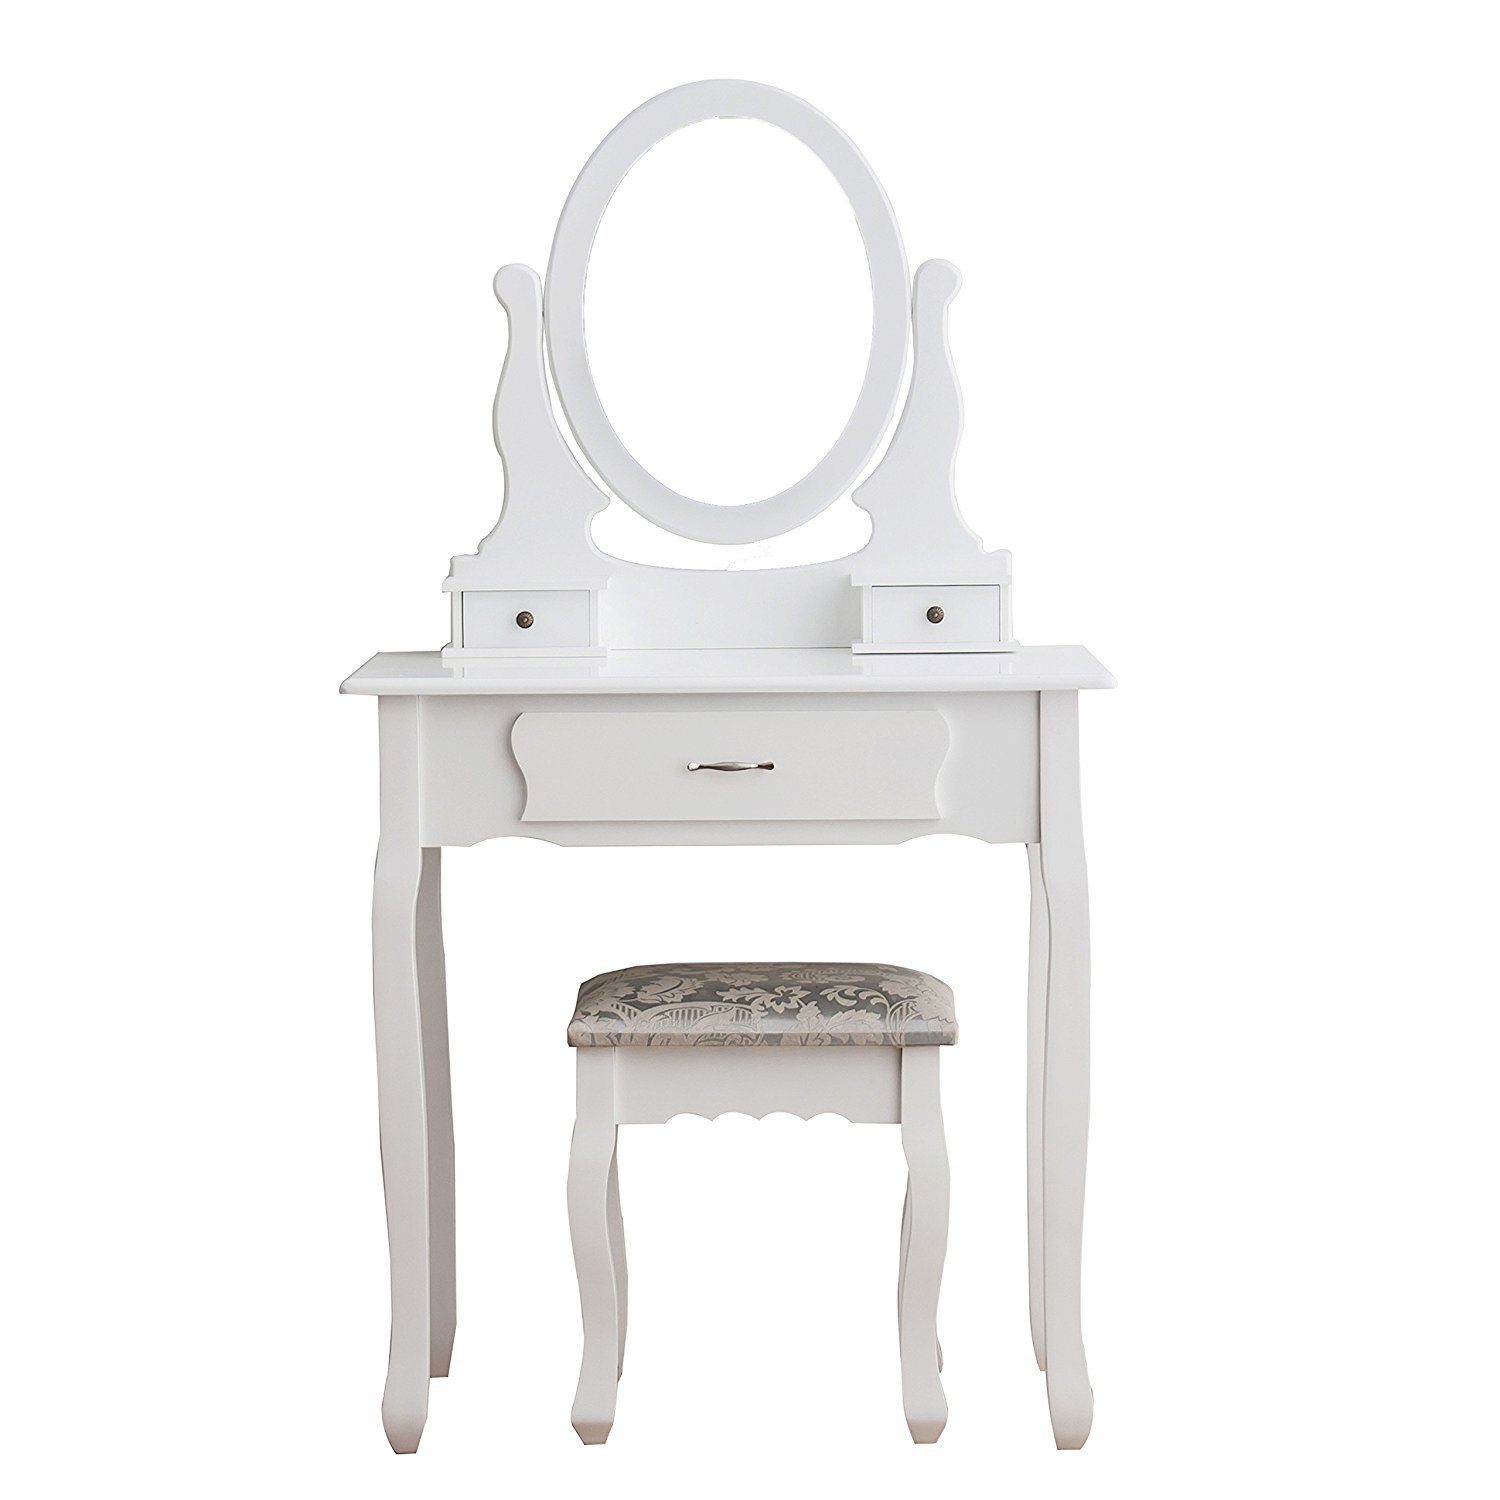 Vanity Set Bedroom Make-up Dressing Table Oval Mirror&Cushioned Stool,White Finish (02-1 Mirror 3 Drawer 1 Stool)